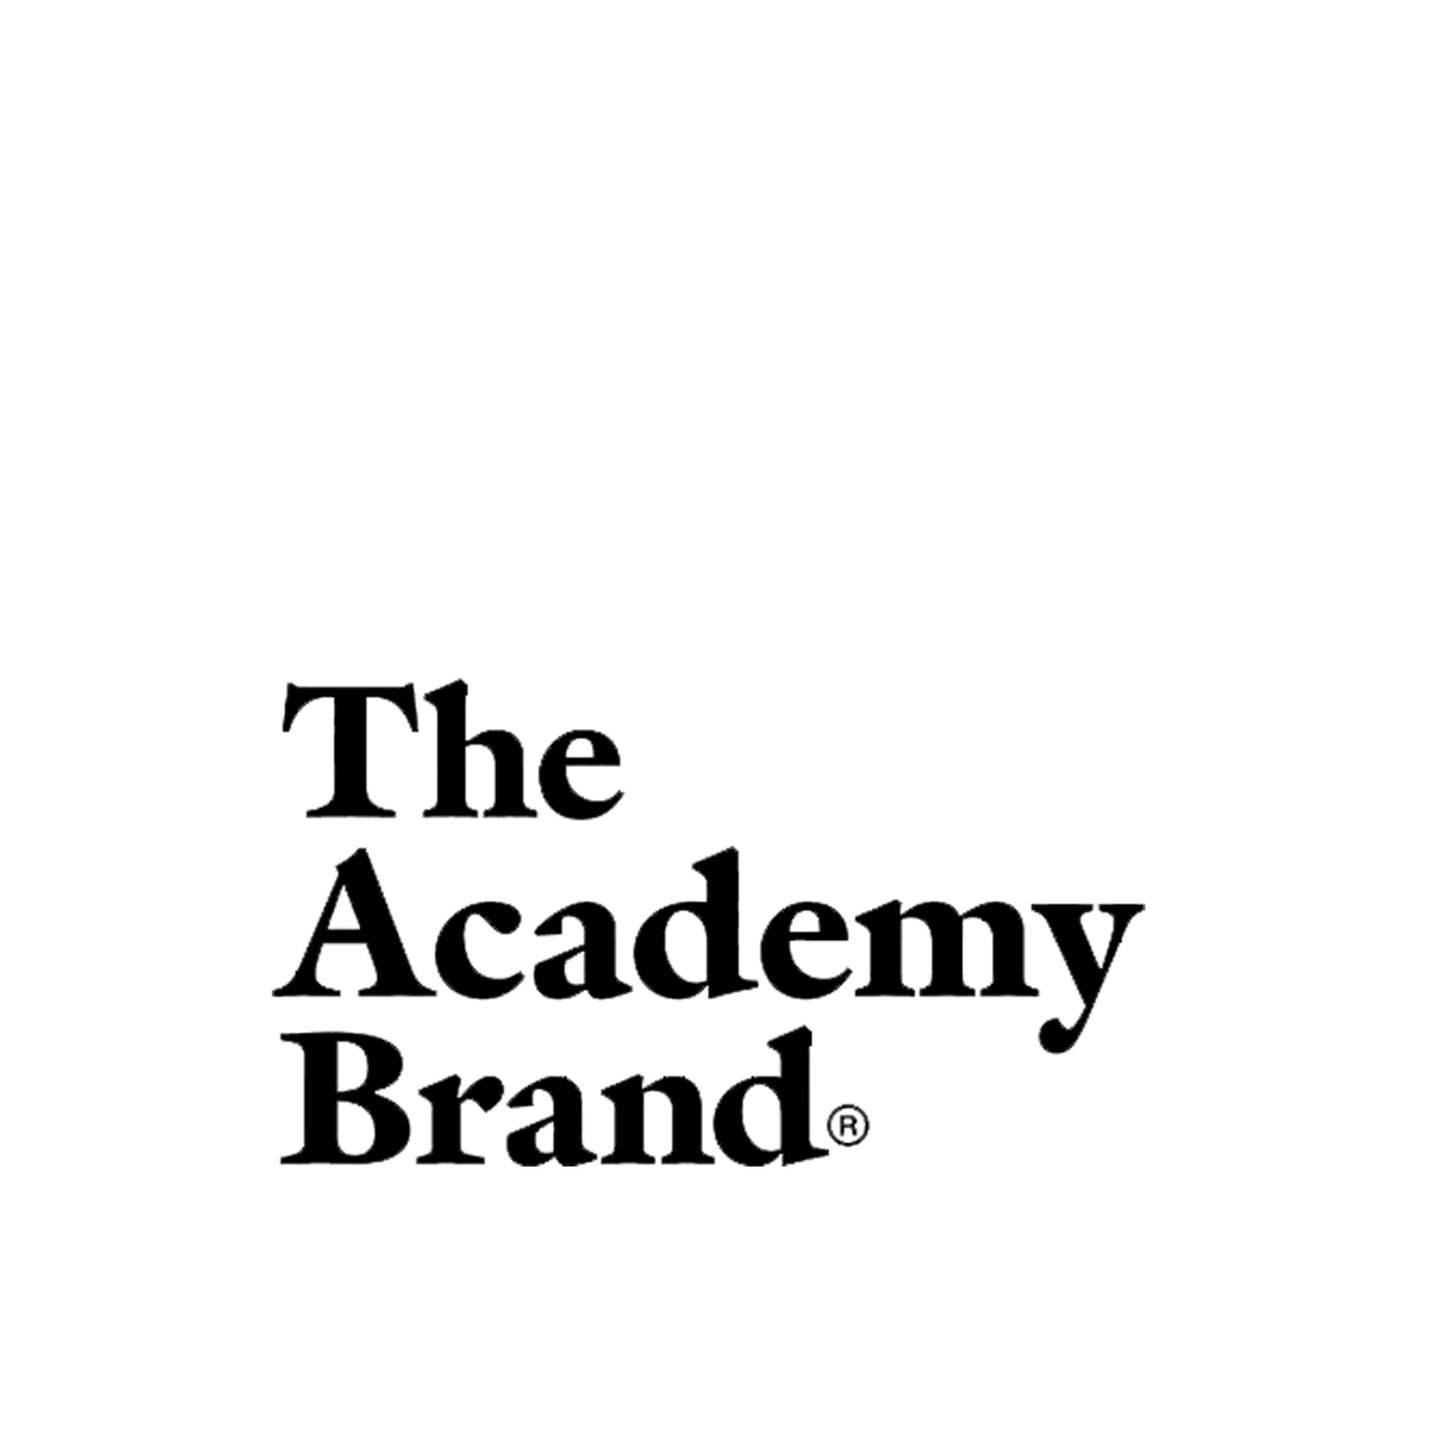 The Academy Brand | available at The Passage Port Fairy | thepassageportfairy.com.au | Surf + Lifestyle + Clothing + Fashion | Mens + Womens + Kids + Boys + Girls